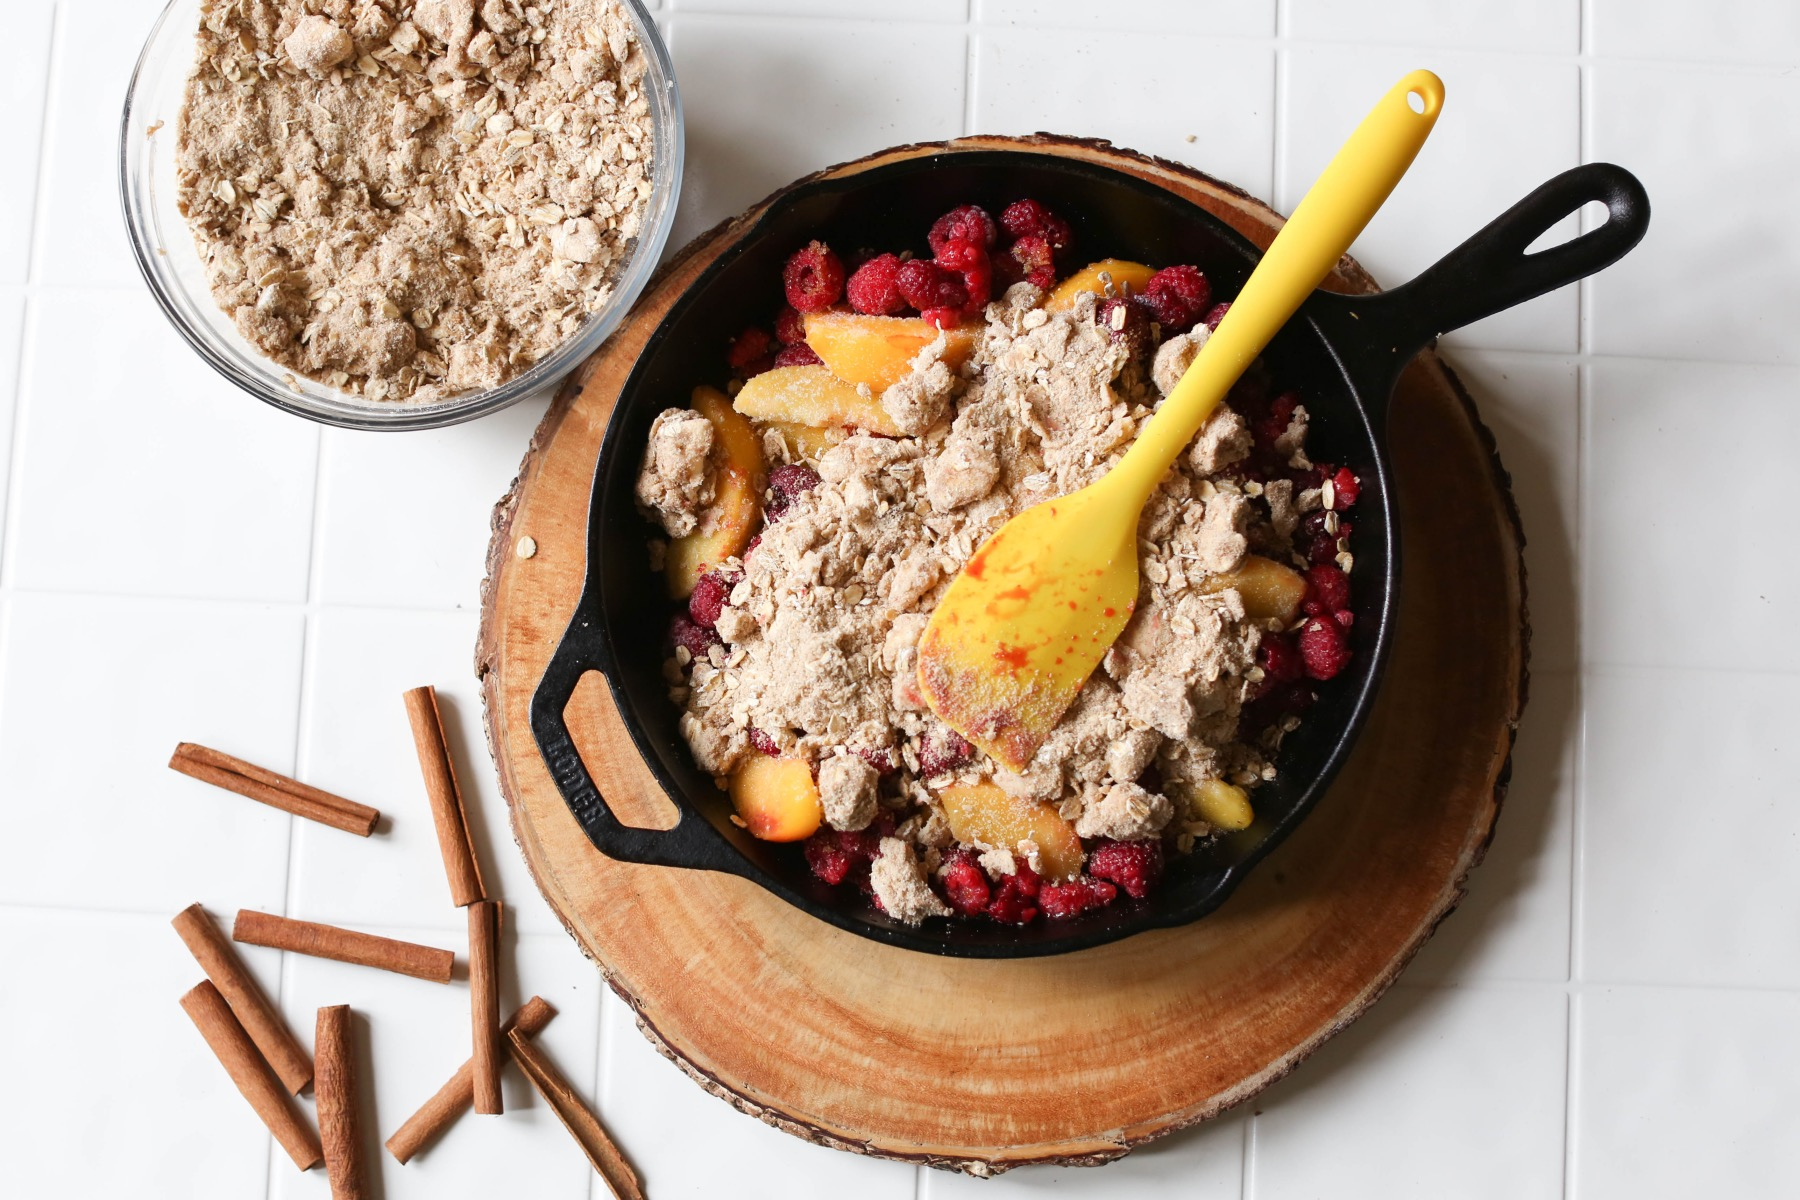 add the crisp topping to the raspberry and peach crisp